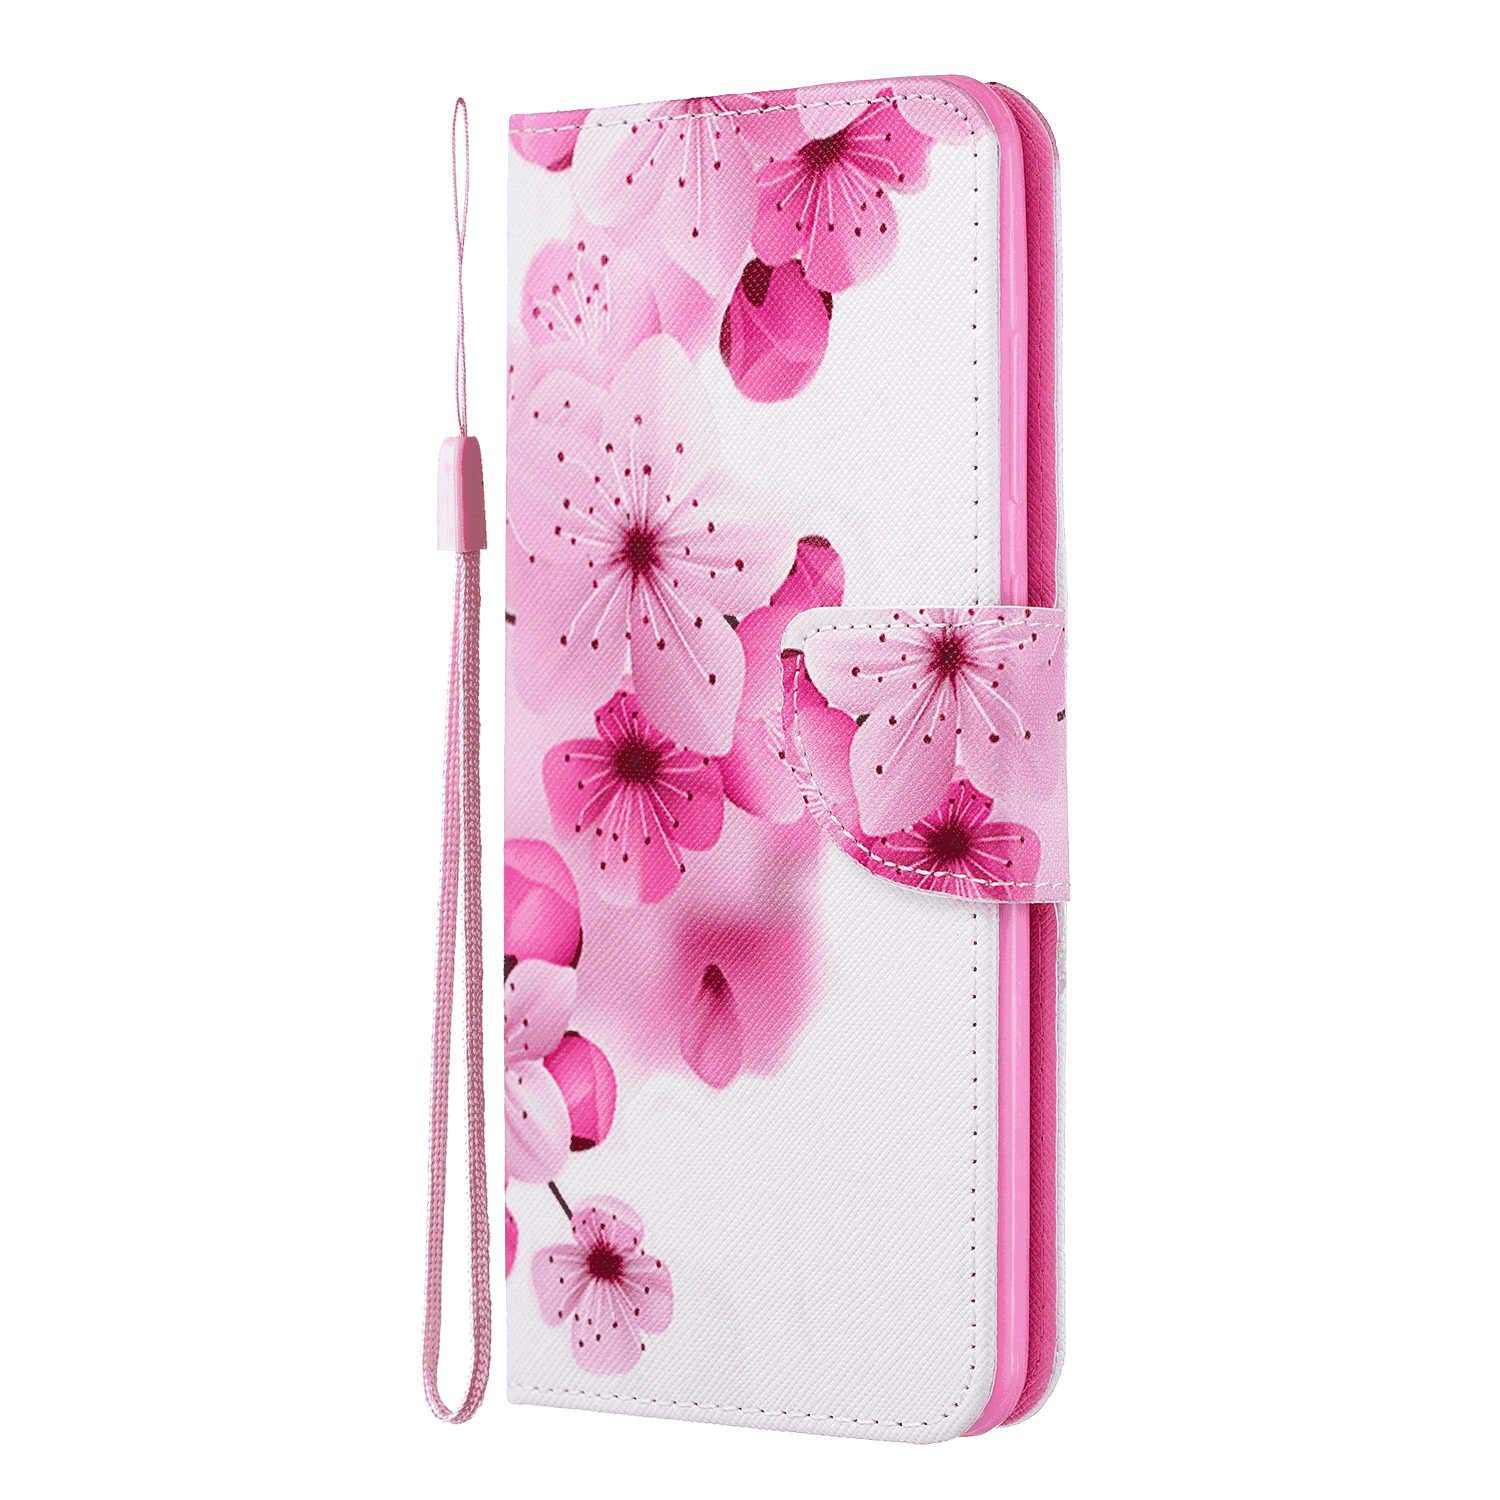 Leather Flip Case Fit for iPhone 11 Pro, Kickstand Card Holders Premium Wallet Cover for iPhone 11 Pro